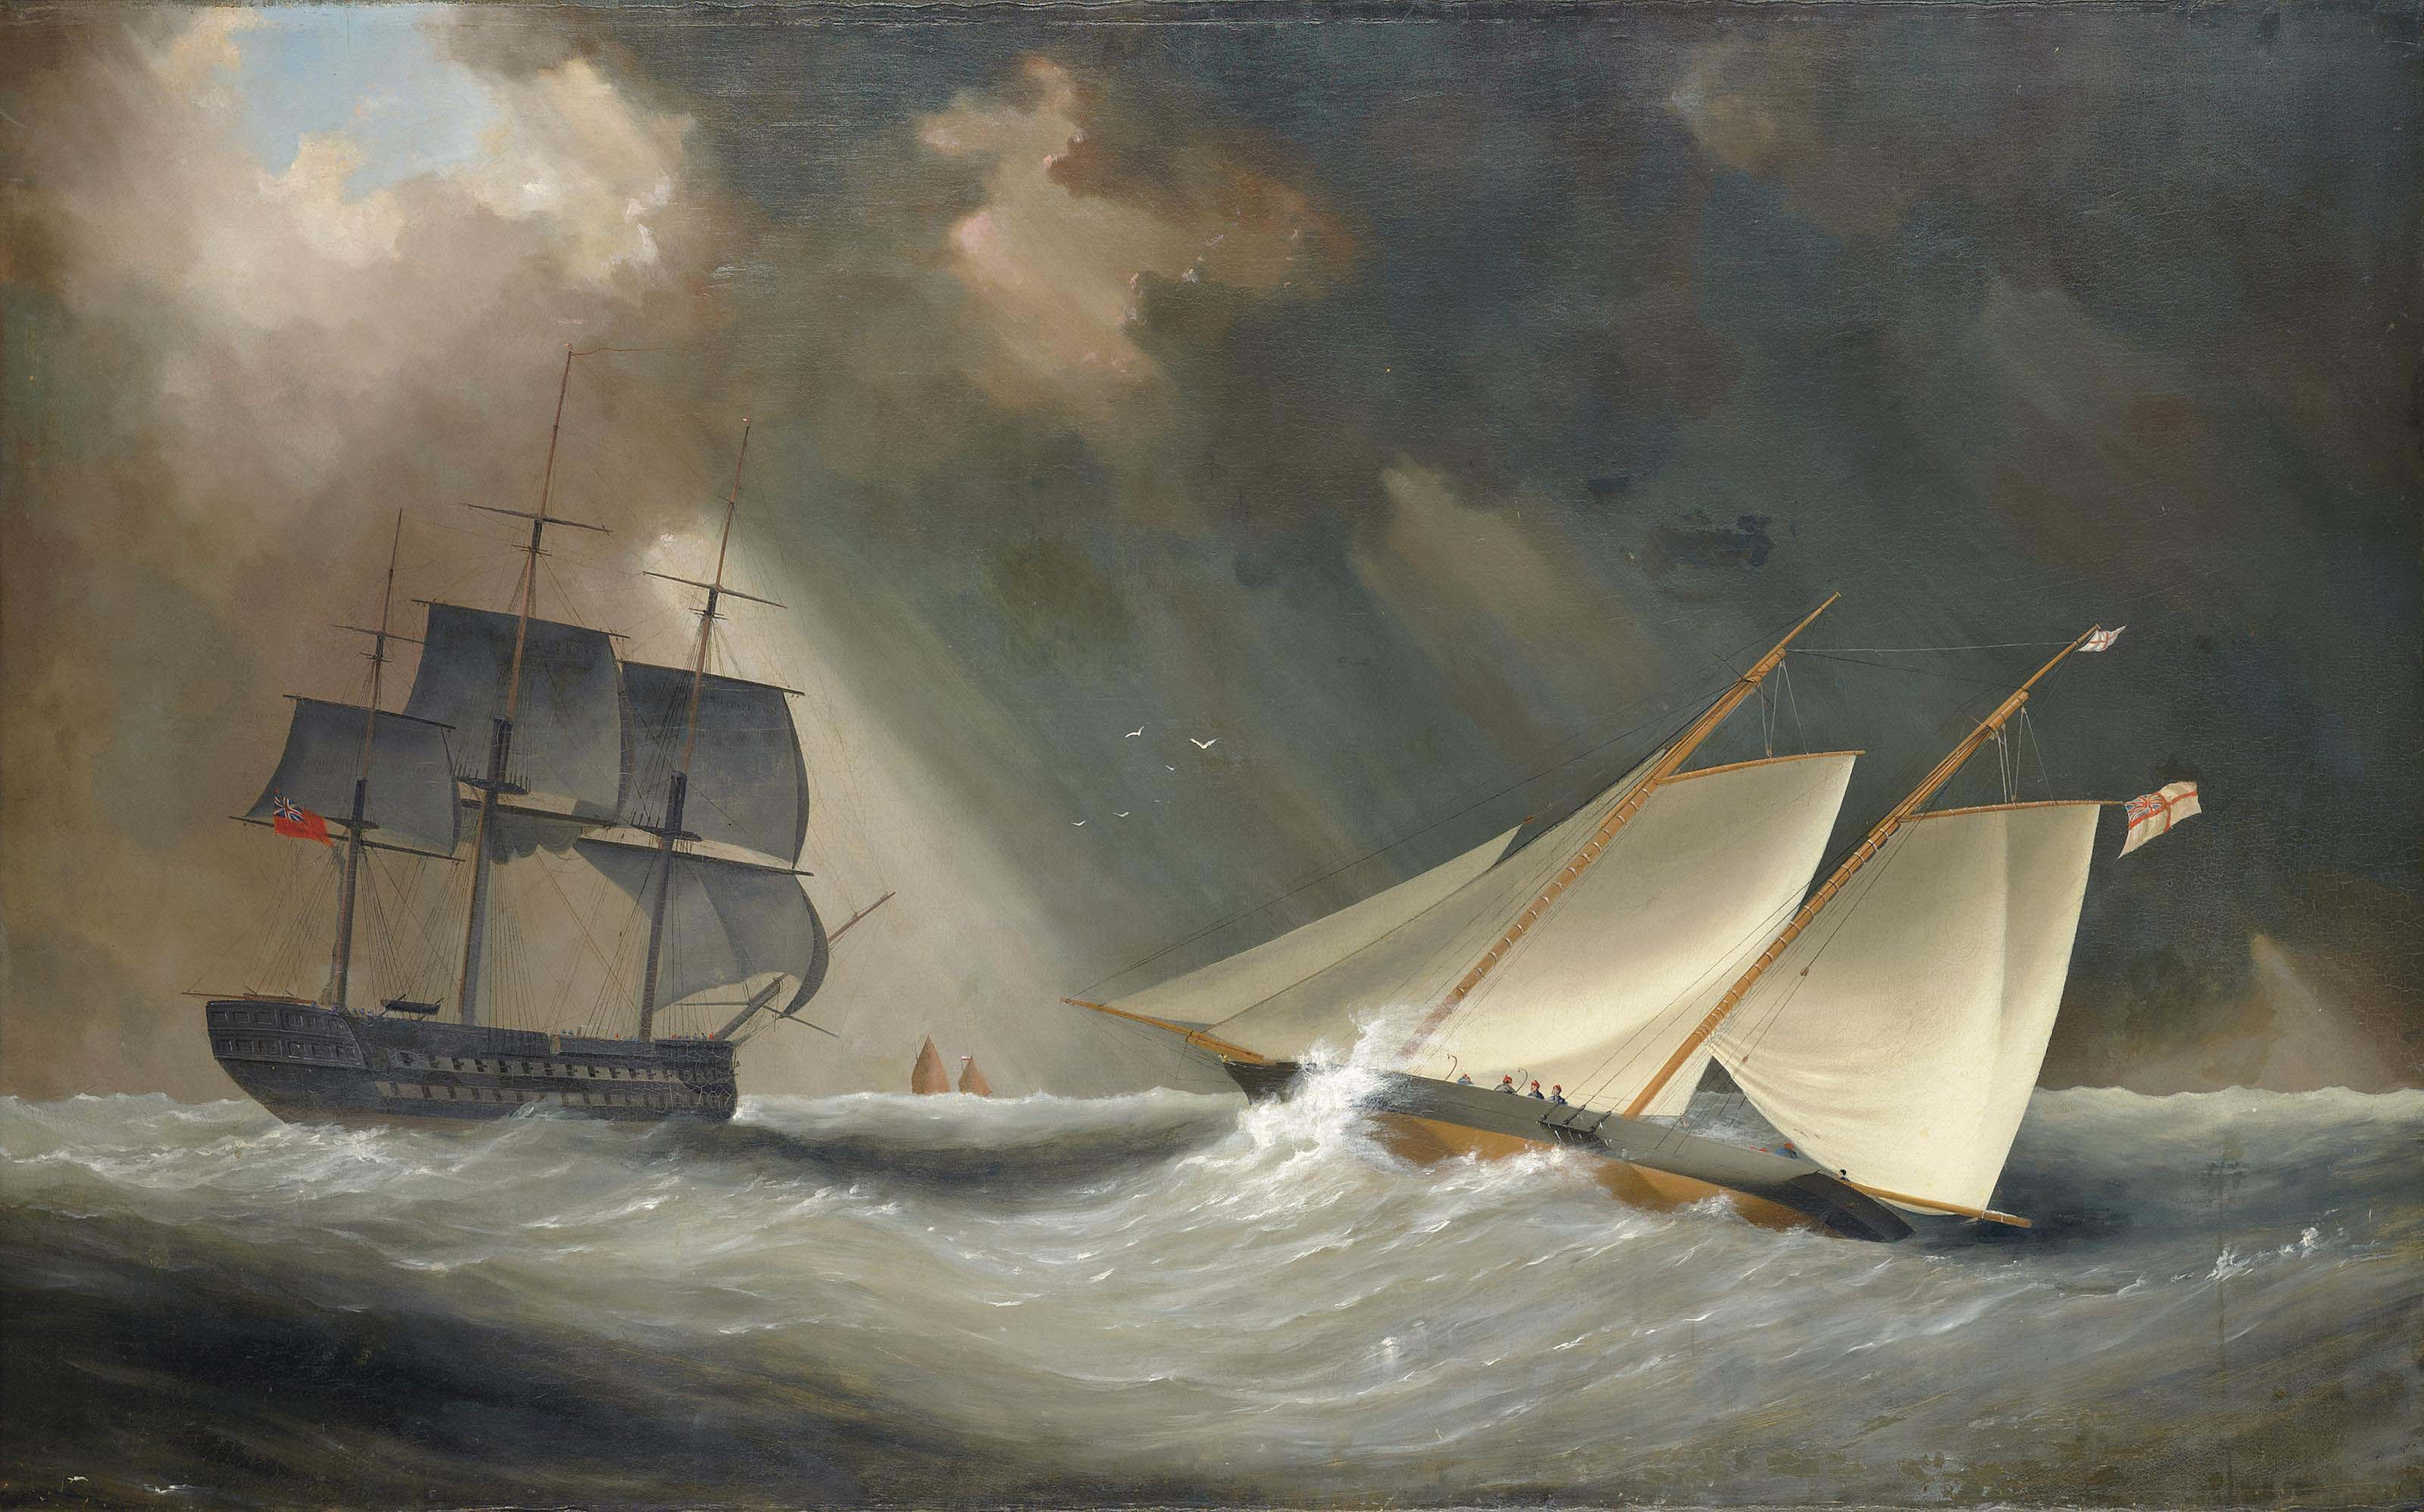 A racing schooner of the Royal Yacht Squadron, thought to be Camilla, heeling in the breeze in the Channel with a Royal Navy two-decker about to cross ahead of her